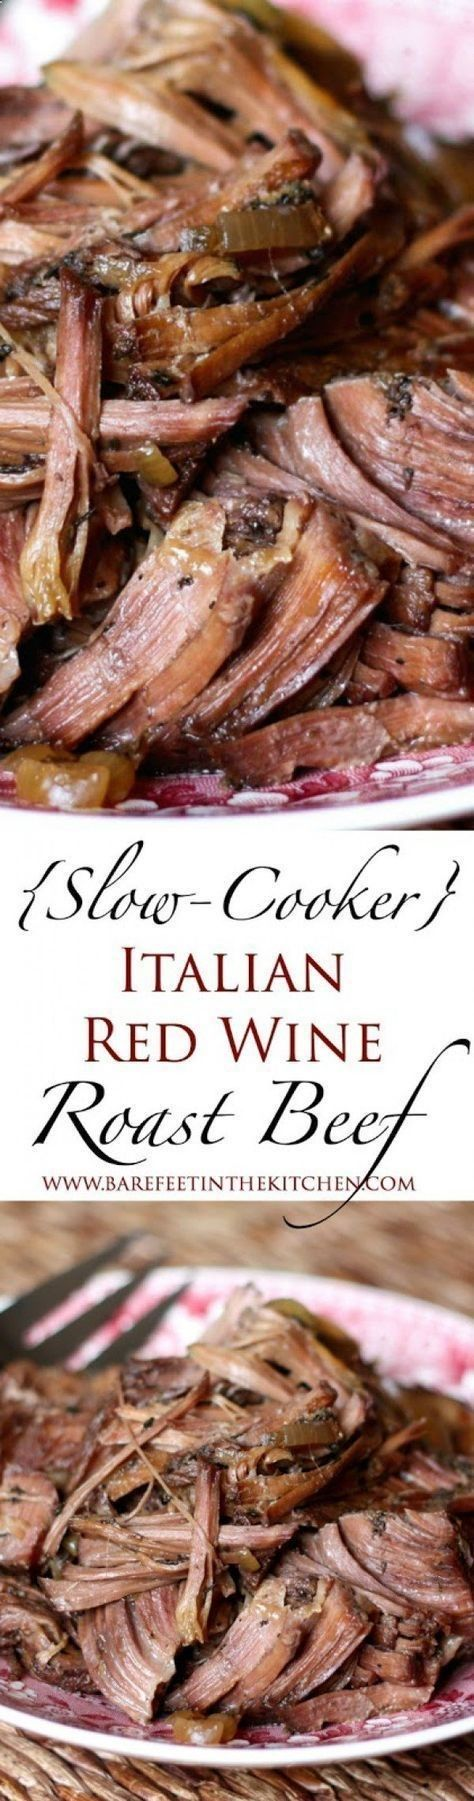 Get the recipe ♥ Slow Cooker Italian Red Wine Roast Beef DIY Home Decor Ideas - Industry Standard Design